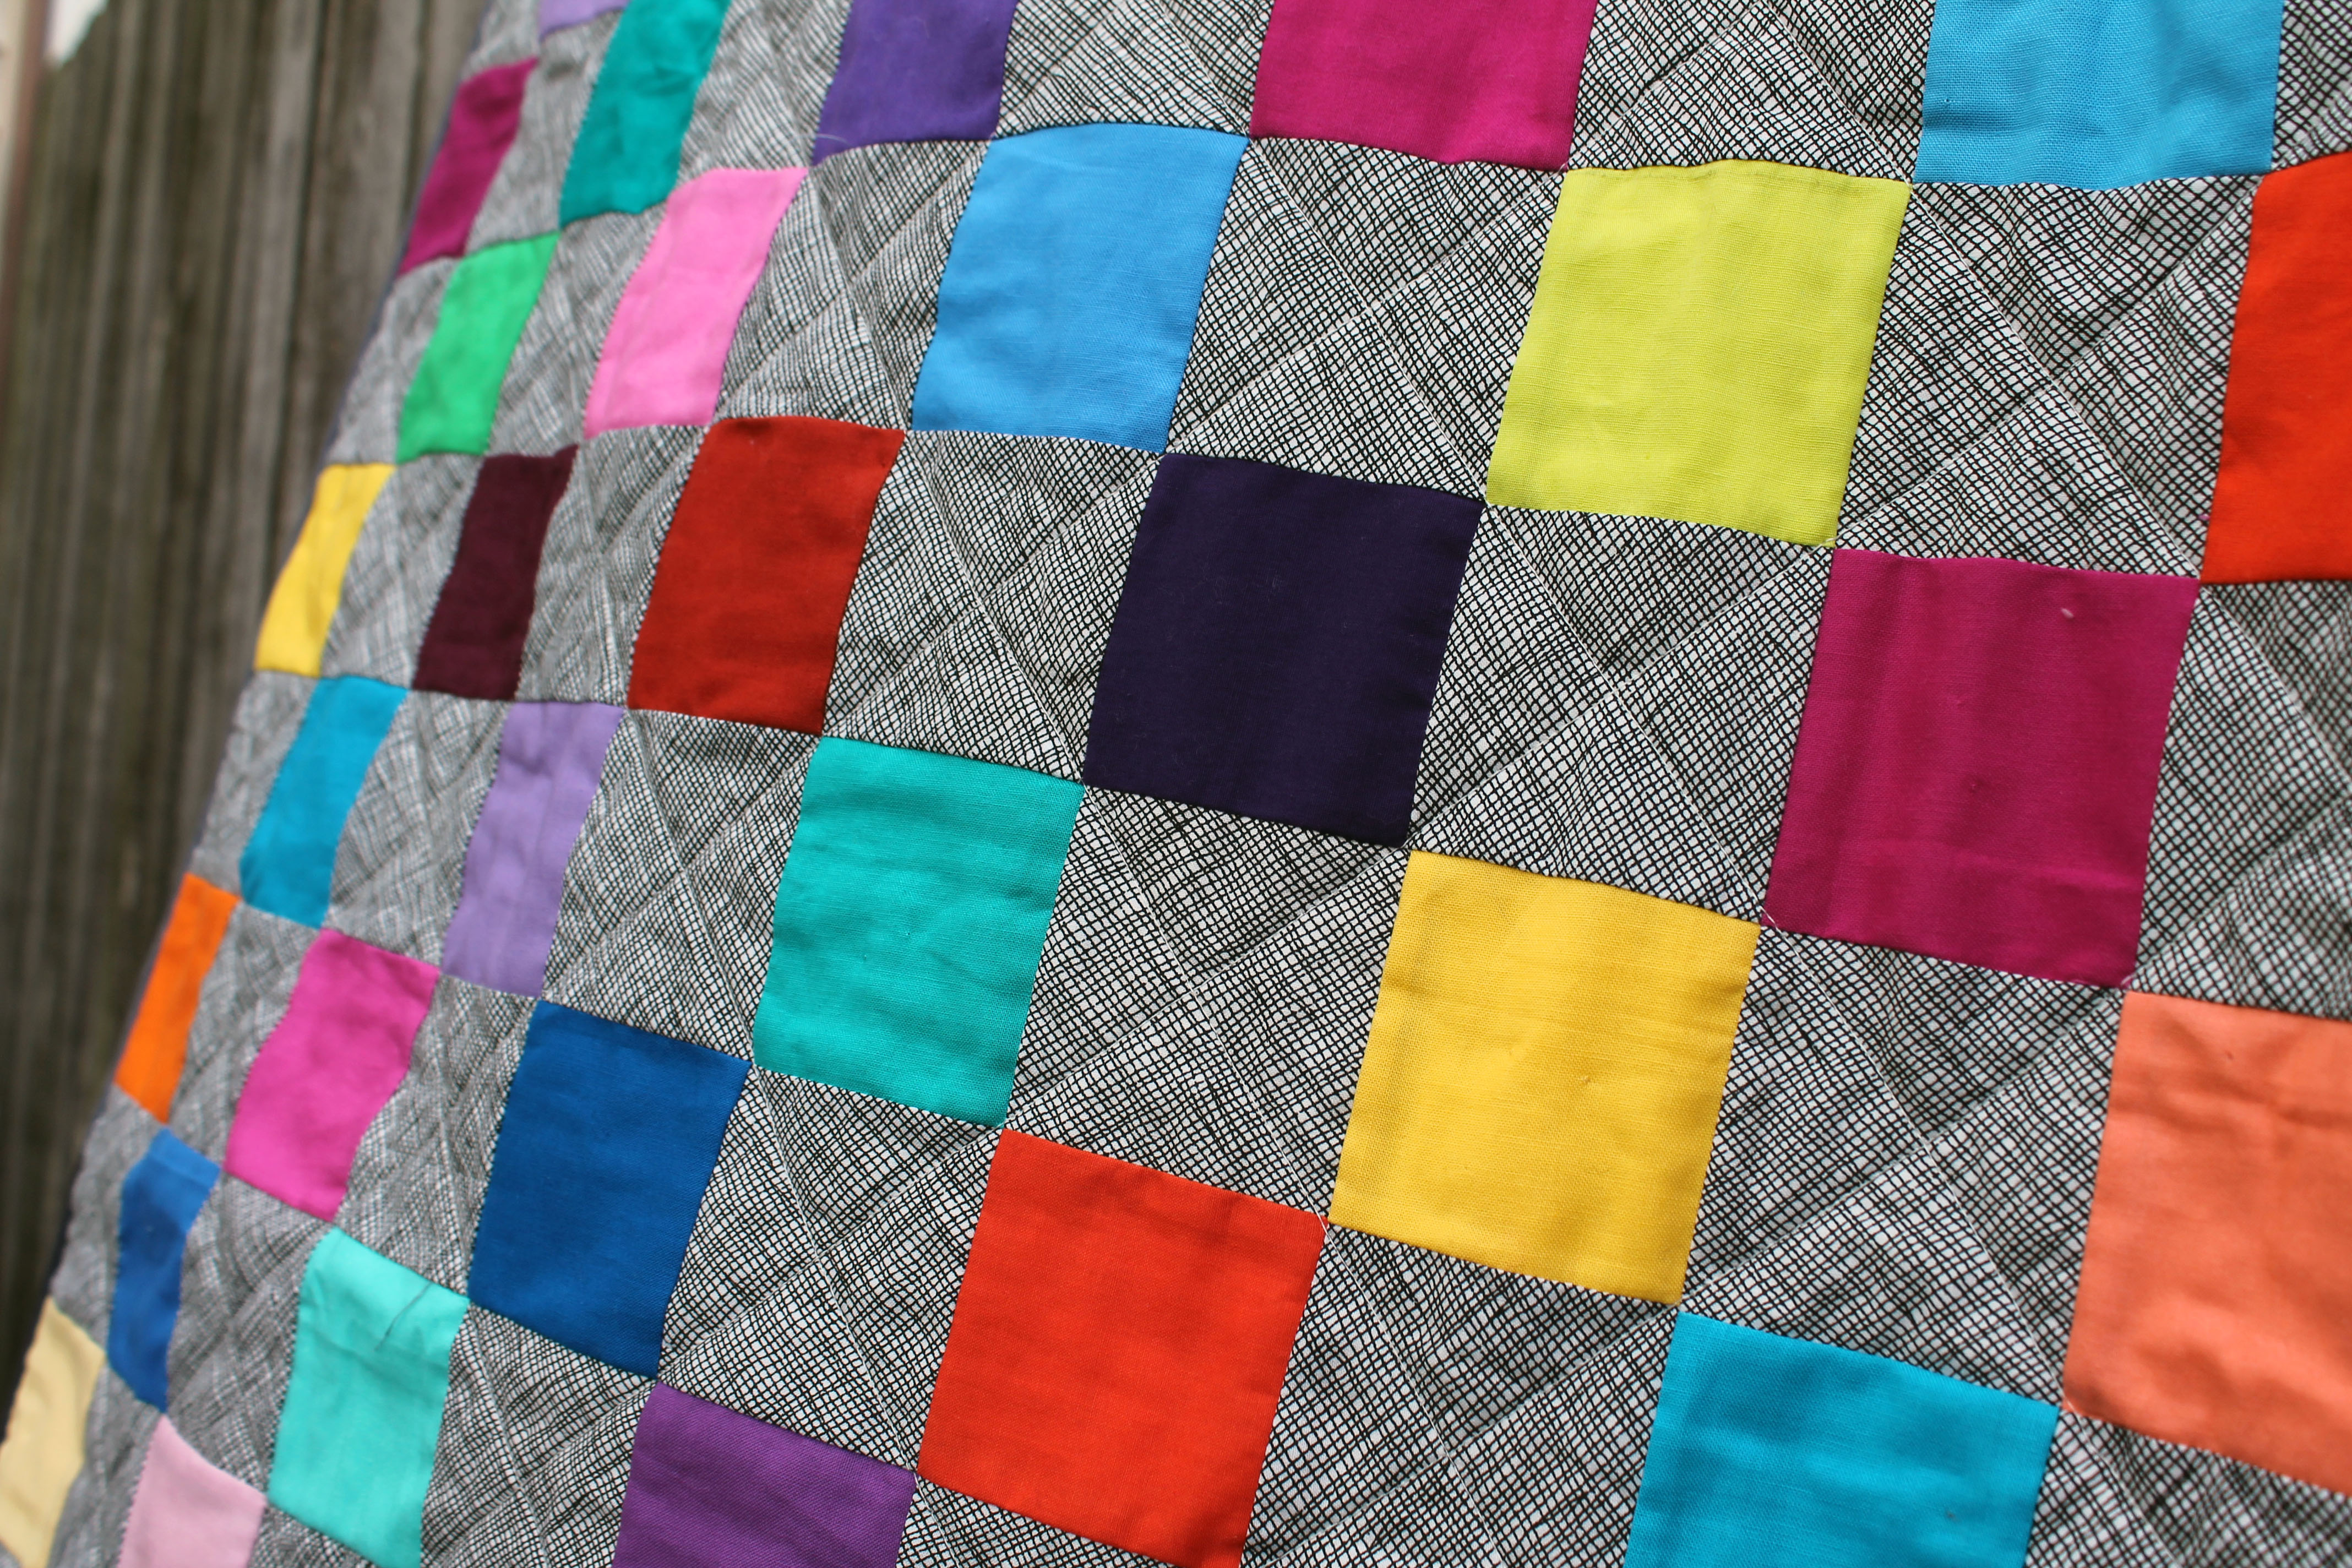 quilting details